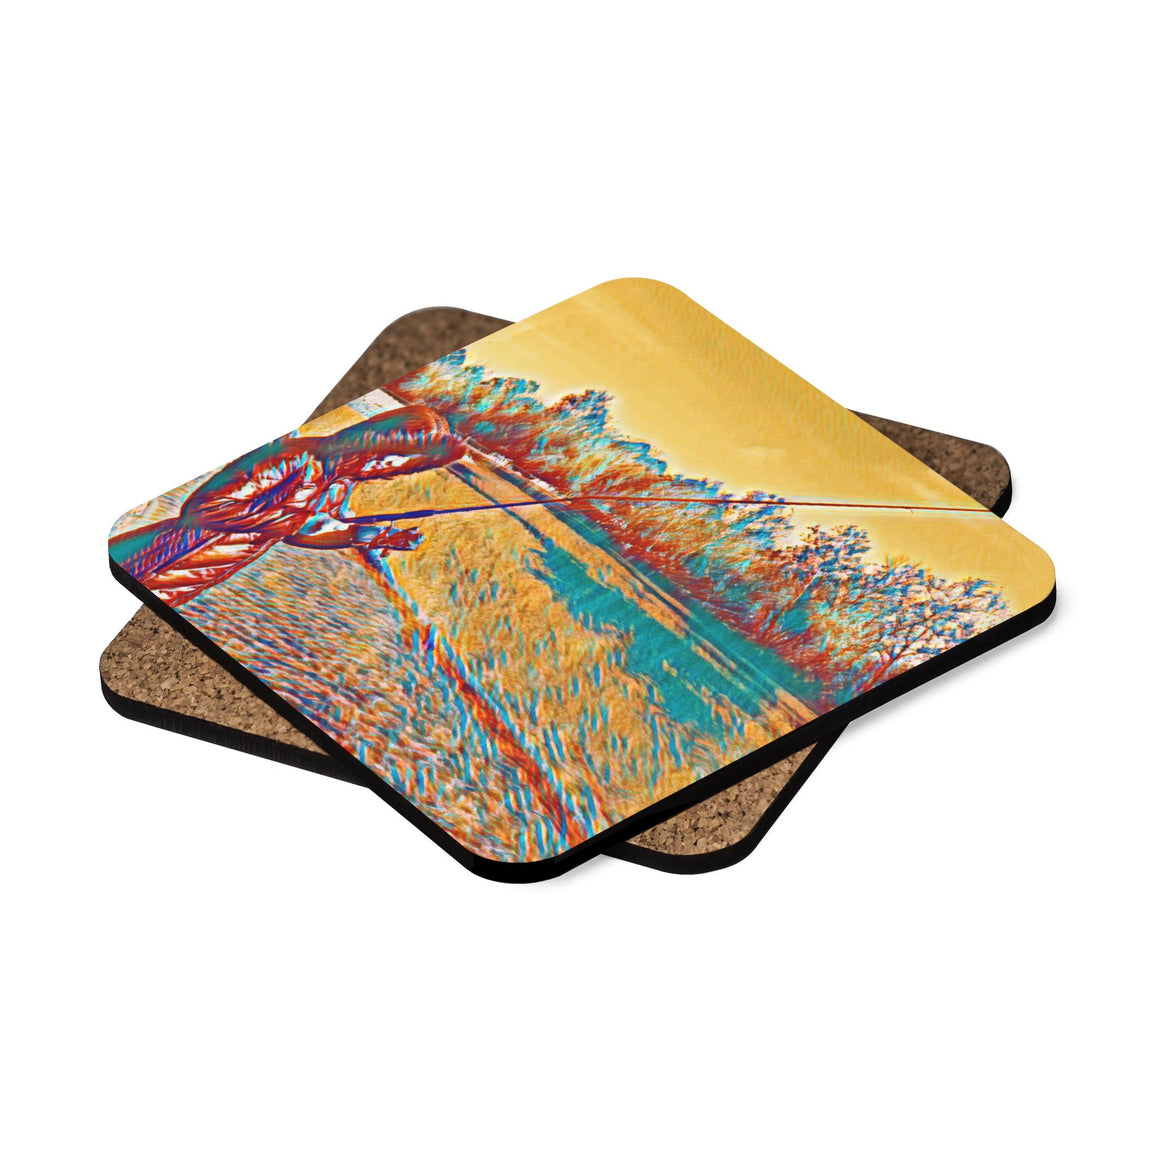 Levi Thang Fishing Design 4 Square Hardboard Coaster Set - 4pcs - I Am A Dreamer